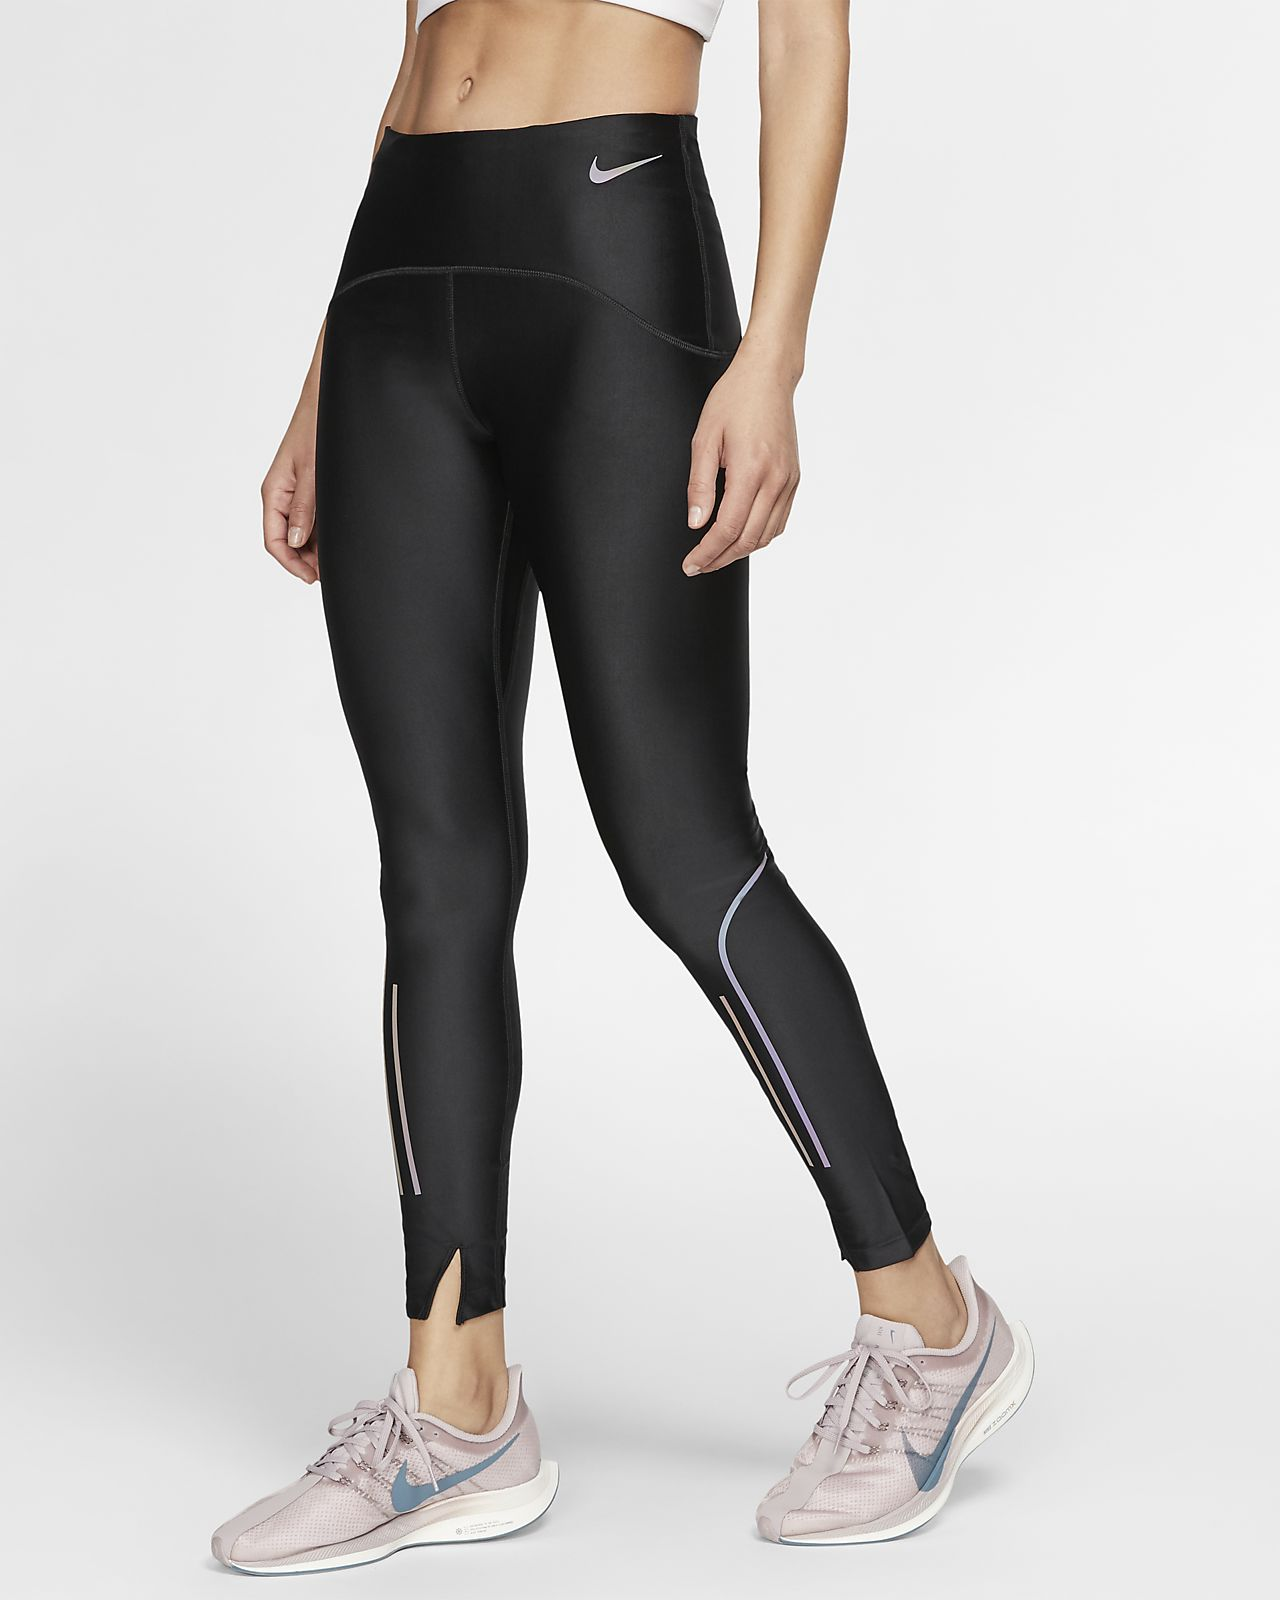 More Mile Girls Long Running Tights Black-7-8 Years